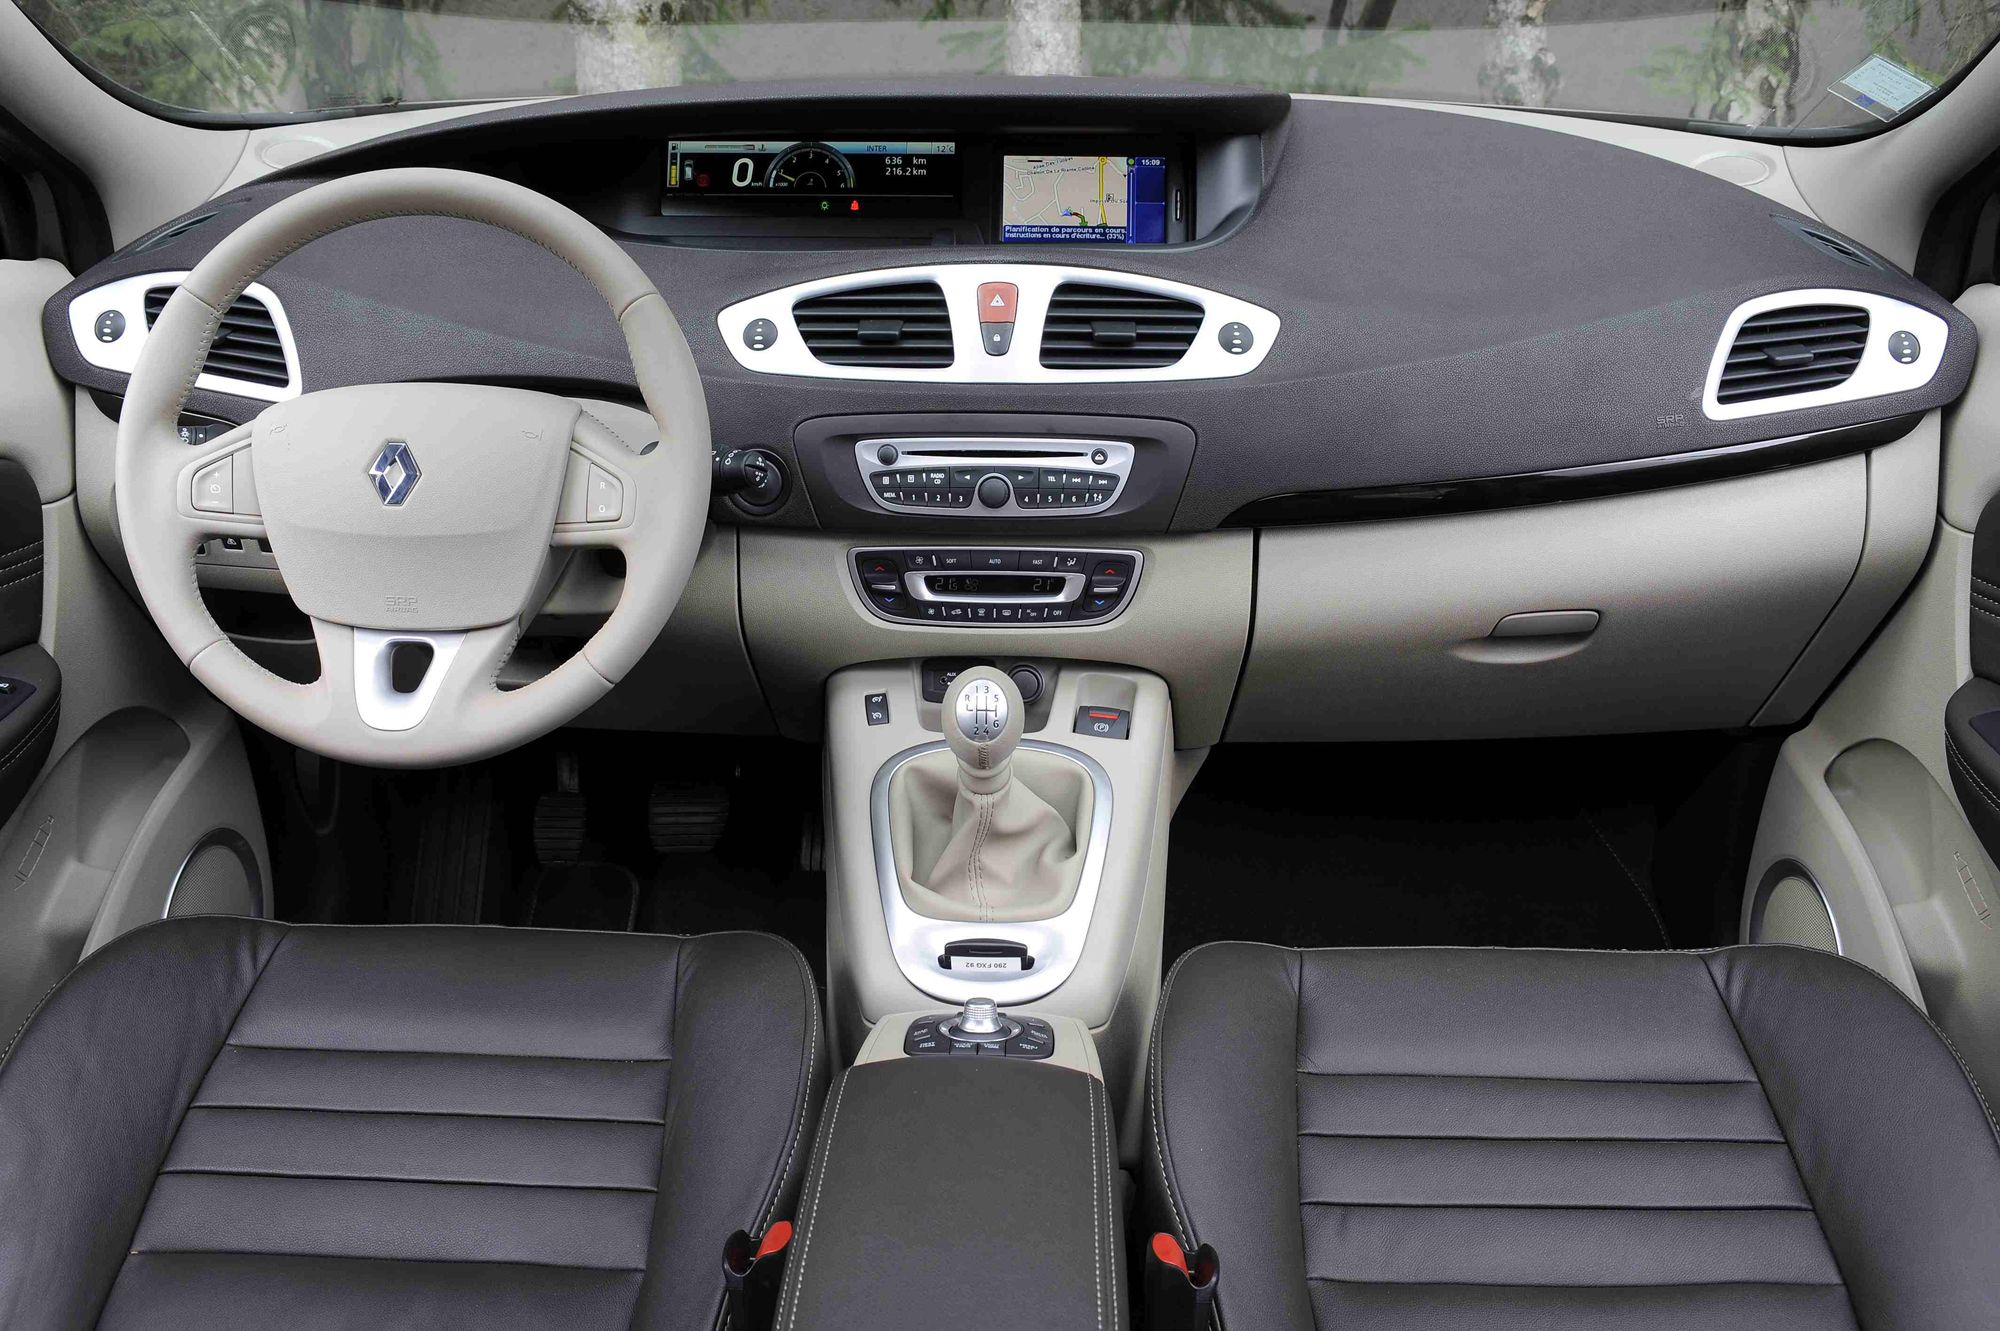 renault grand scenic iii renault pinterest cars and automobile. Black Bedroom Furniture Sets. Home Design Ideas